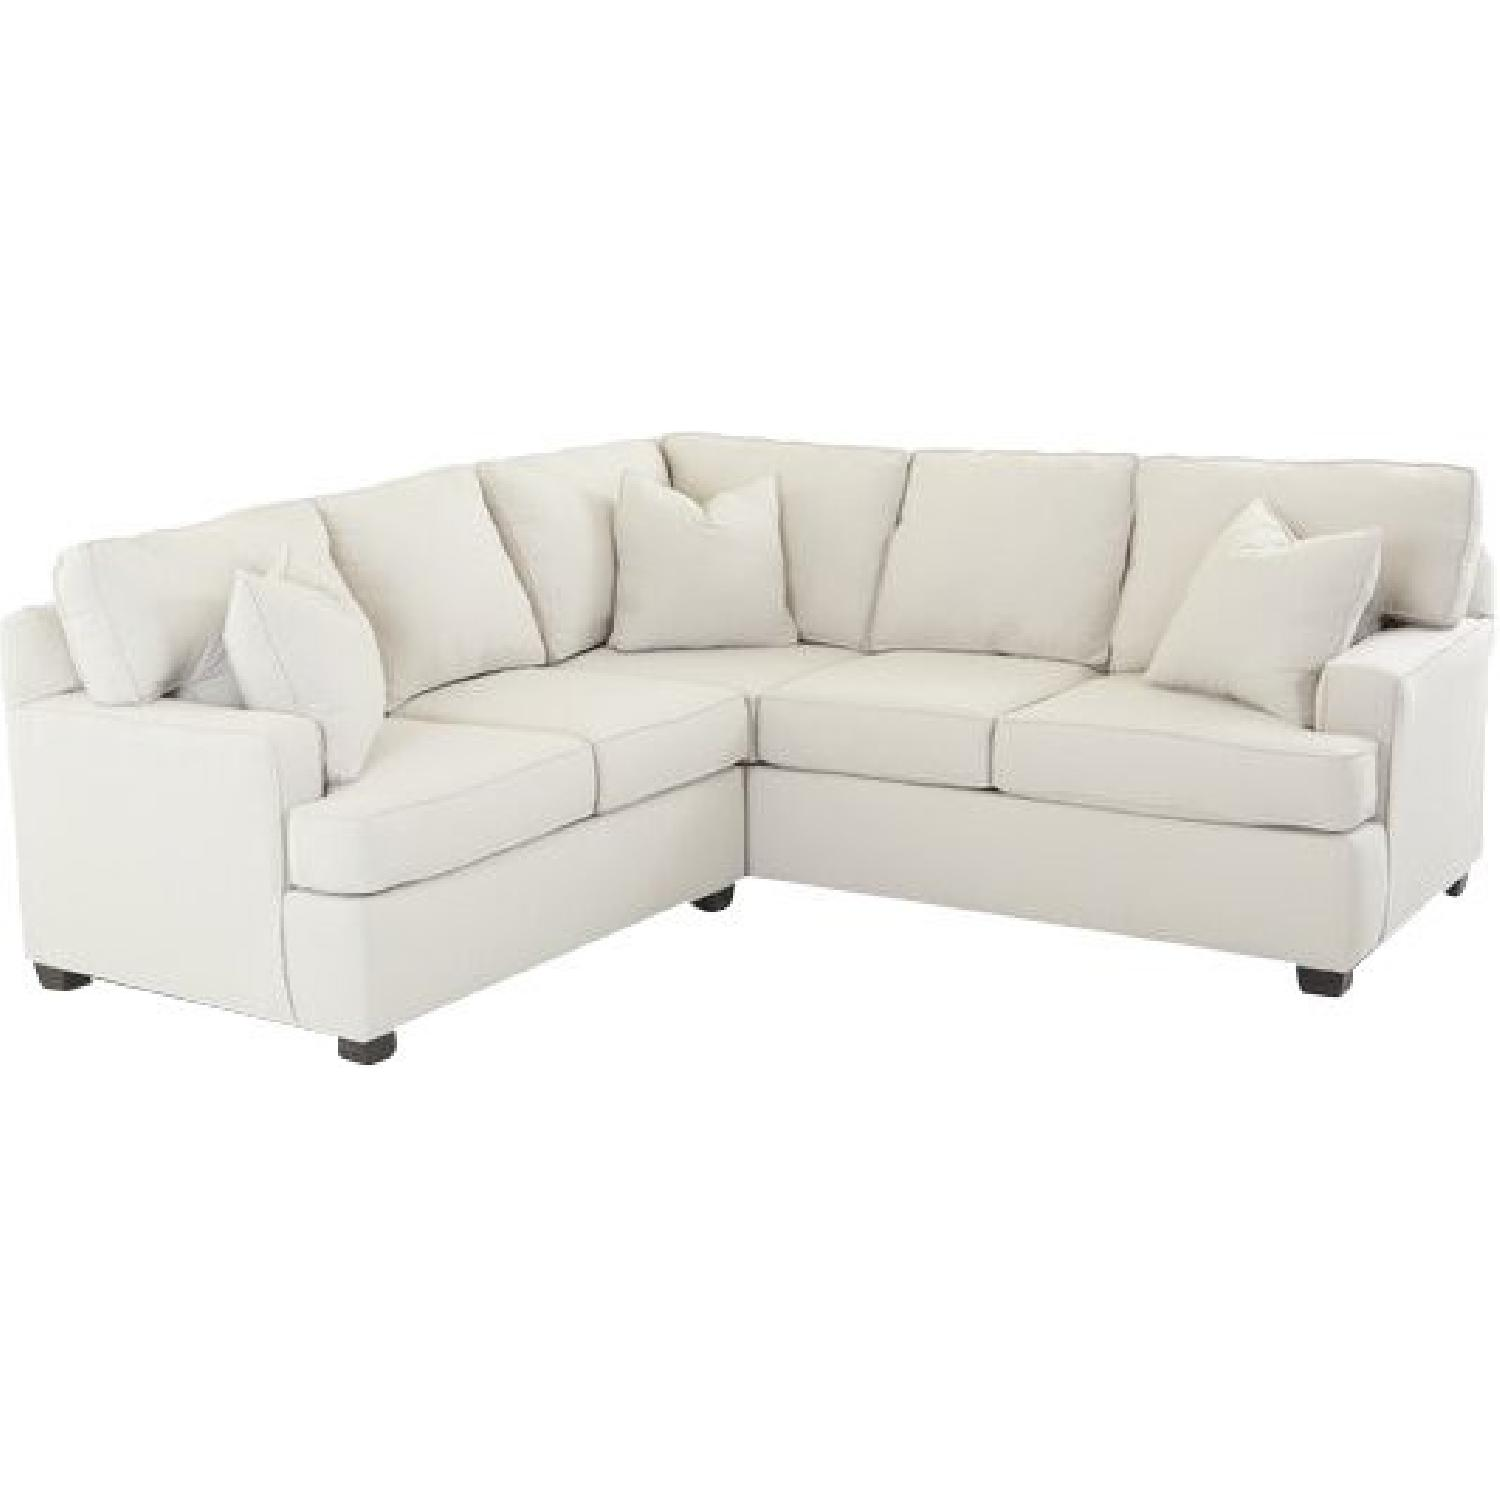 Wayfair Russell Farm Ivory Sectional Sofa - image-0